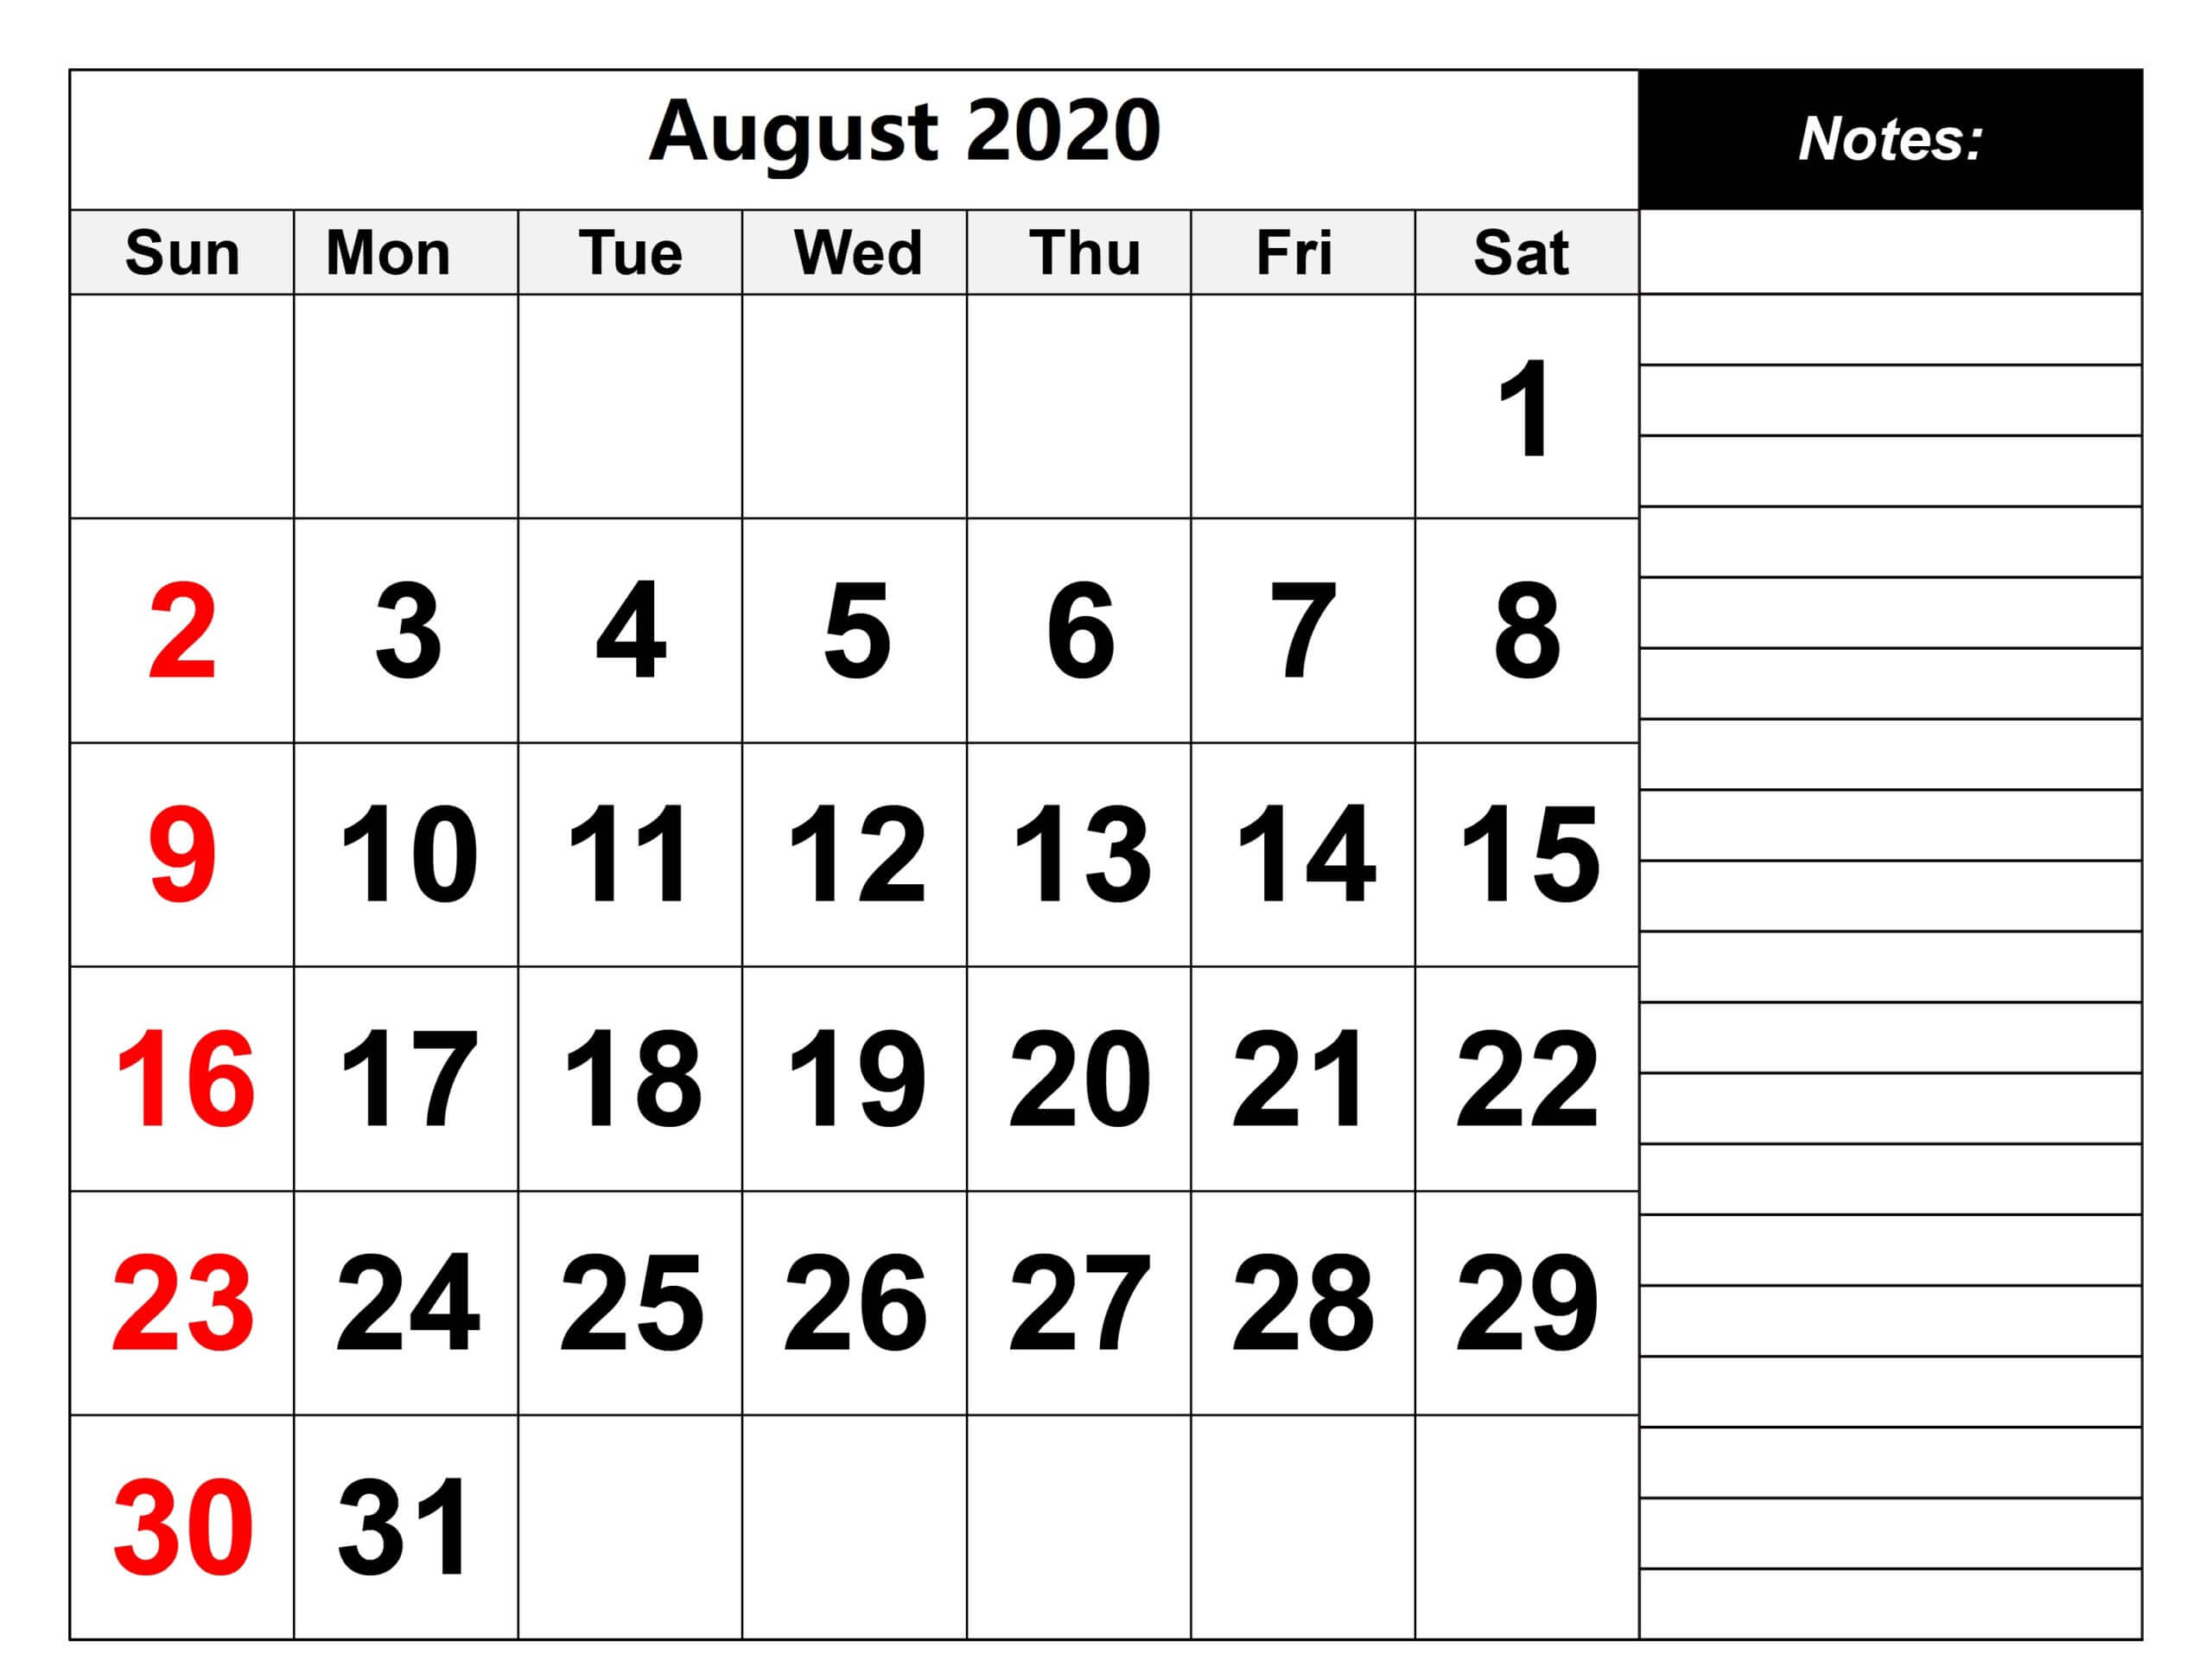 August 2020 Calendar Template With Holidays